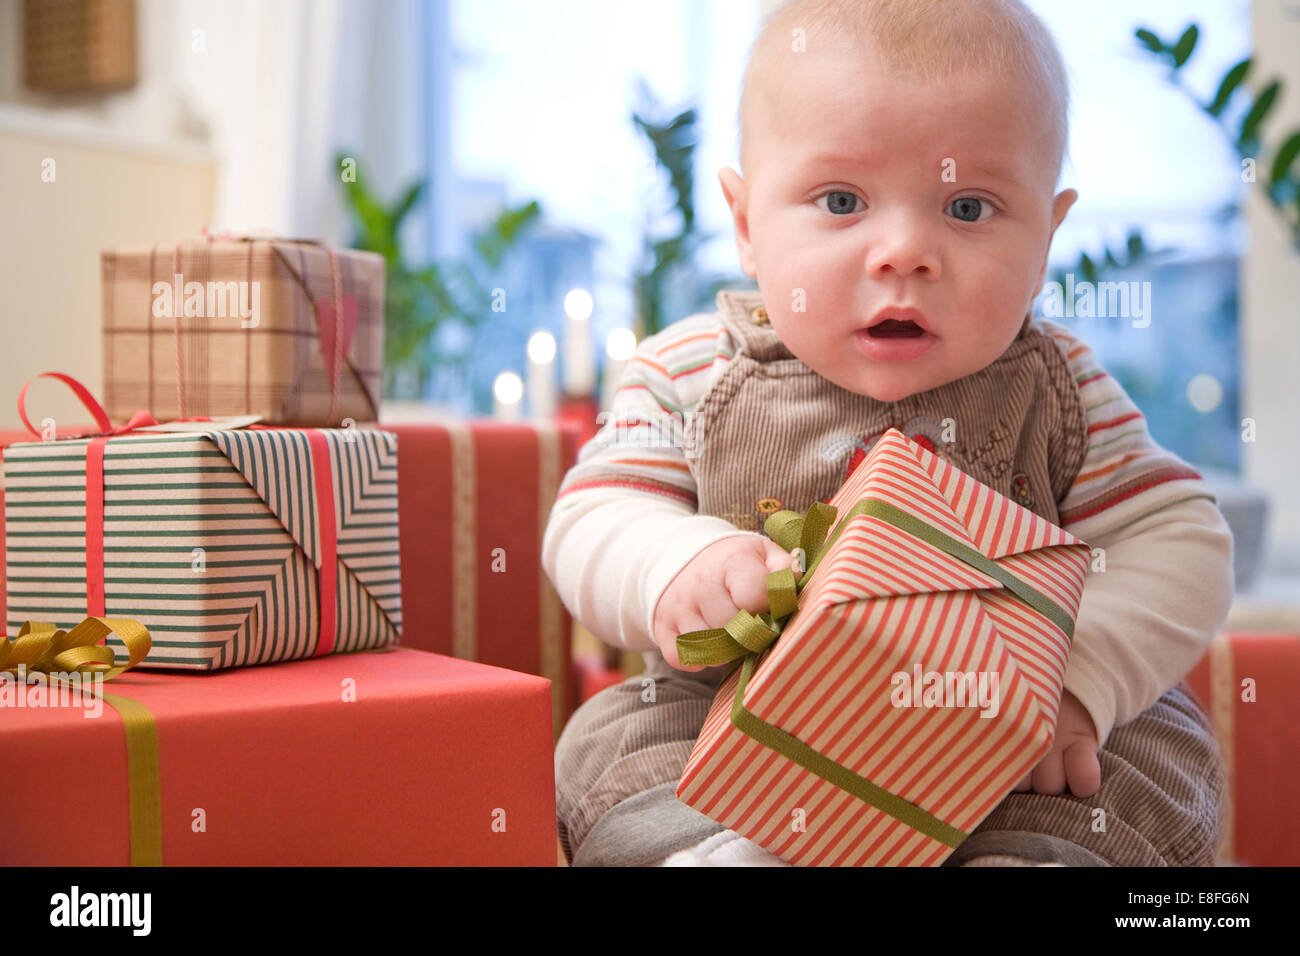 Baby boy with Christmas presents - Stock Image